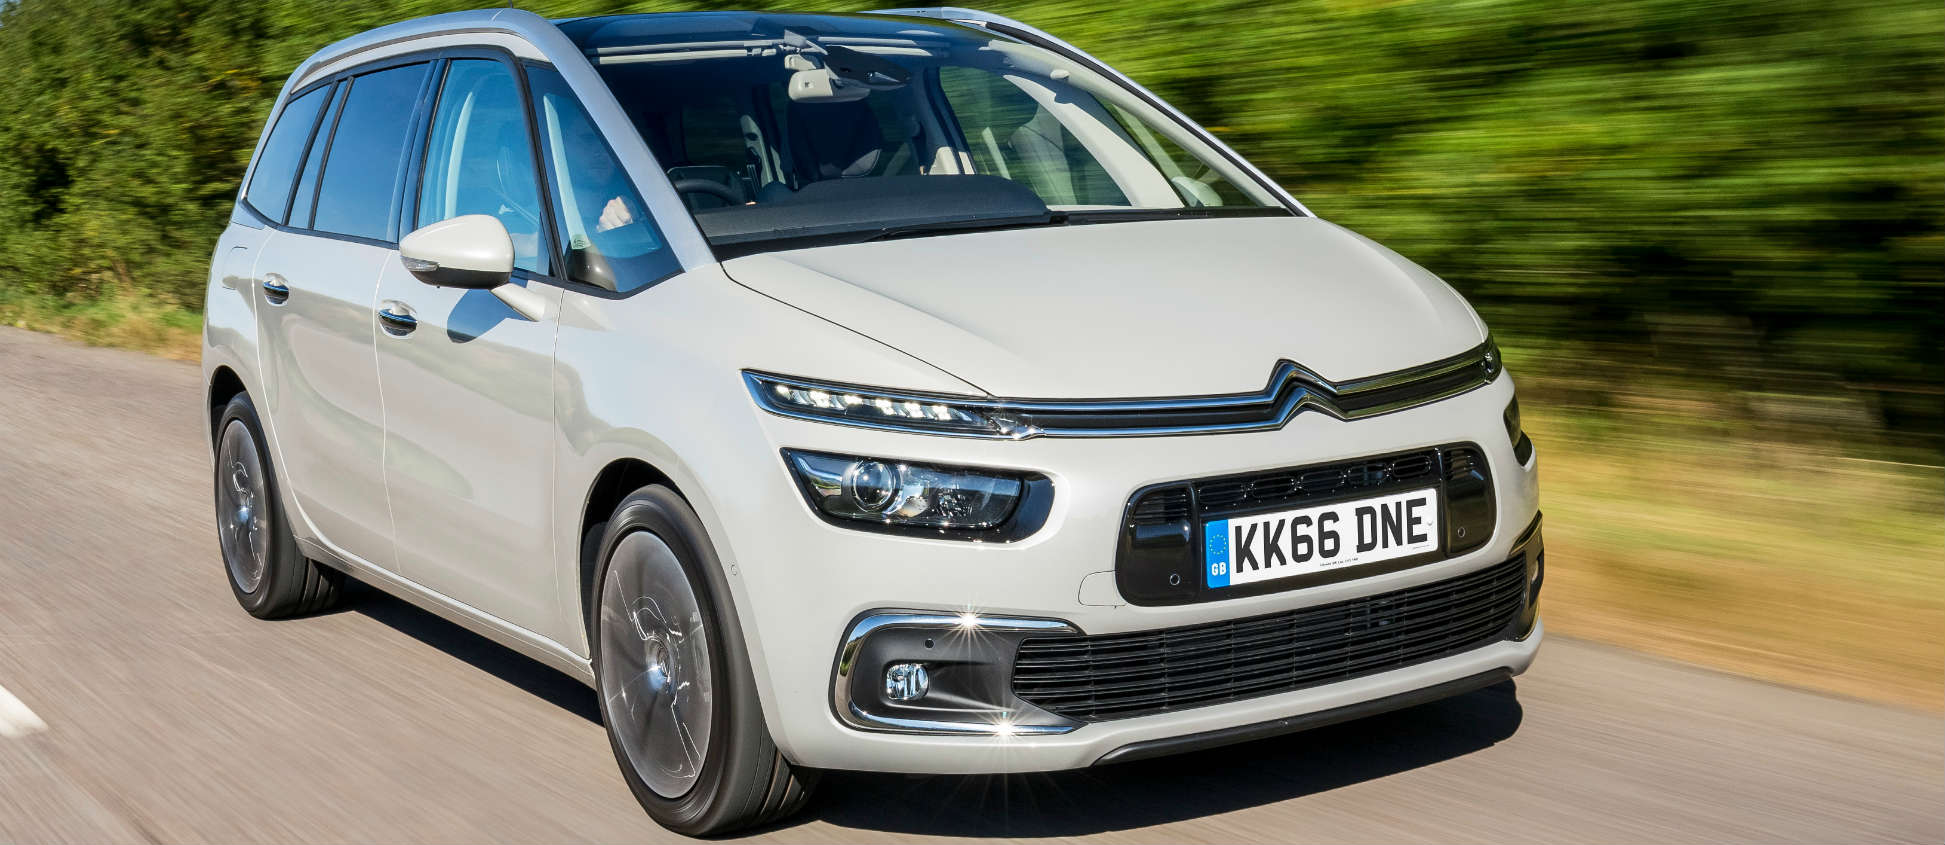 uk pricing and specs released for new citro n c4 picasso and new grand c4 picasso drive time. Black Bedroom Furniture Sets. Home Design Ideas